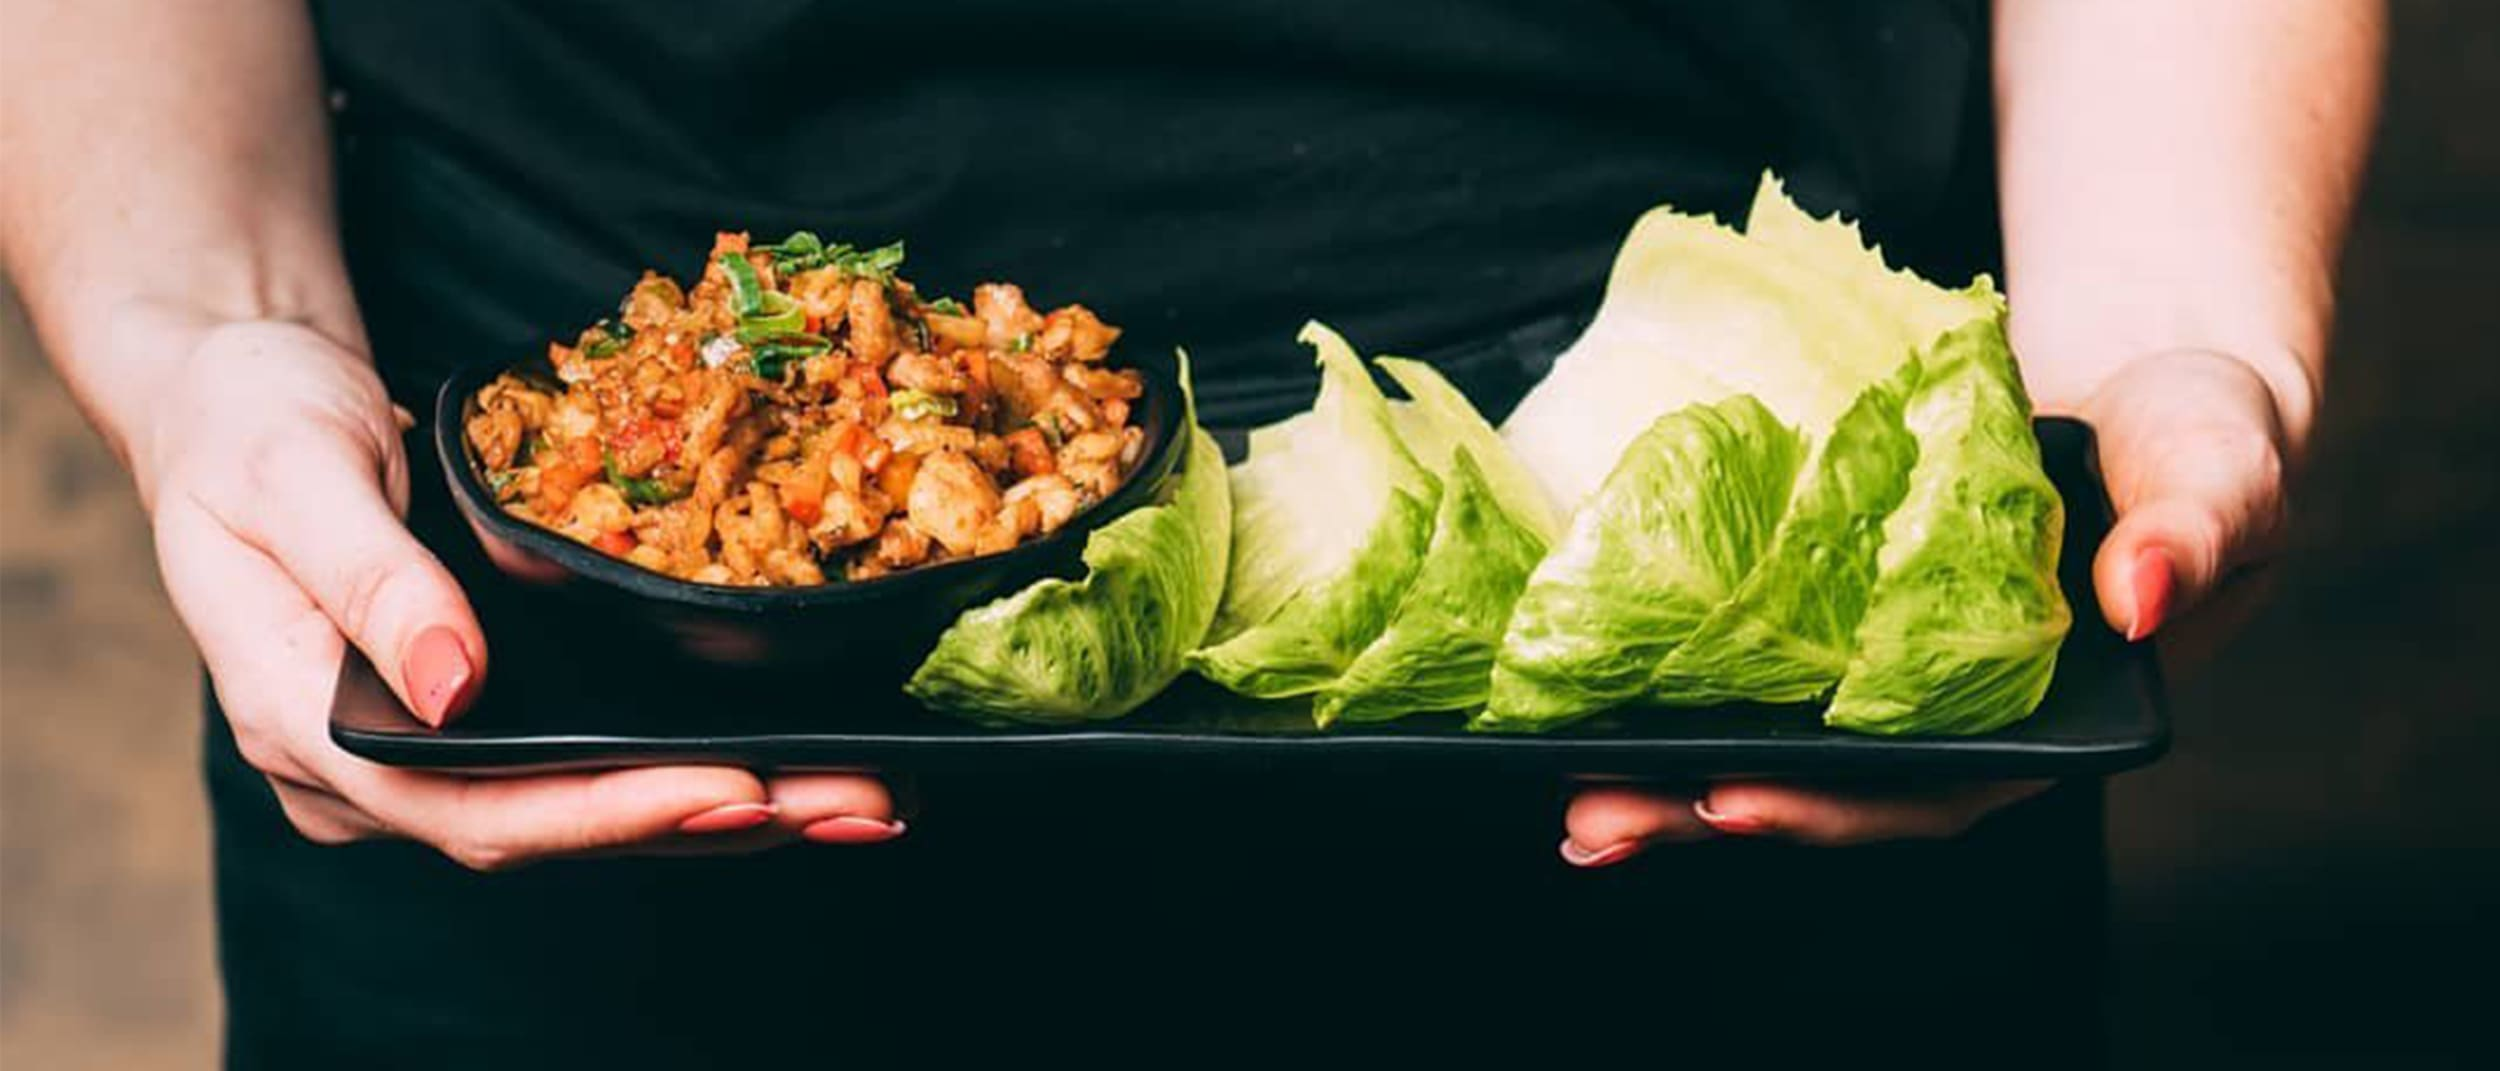 Miss Chow's: $15 lunch specials